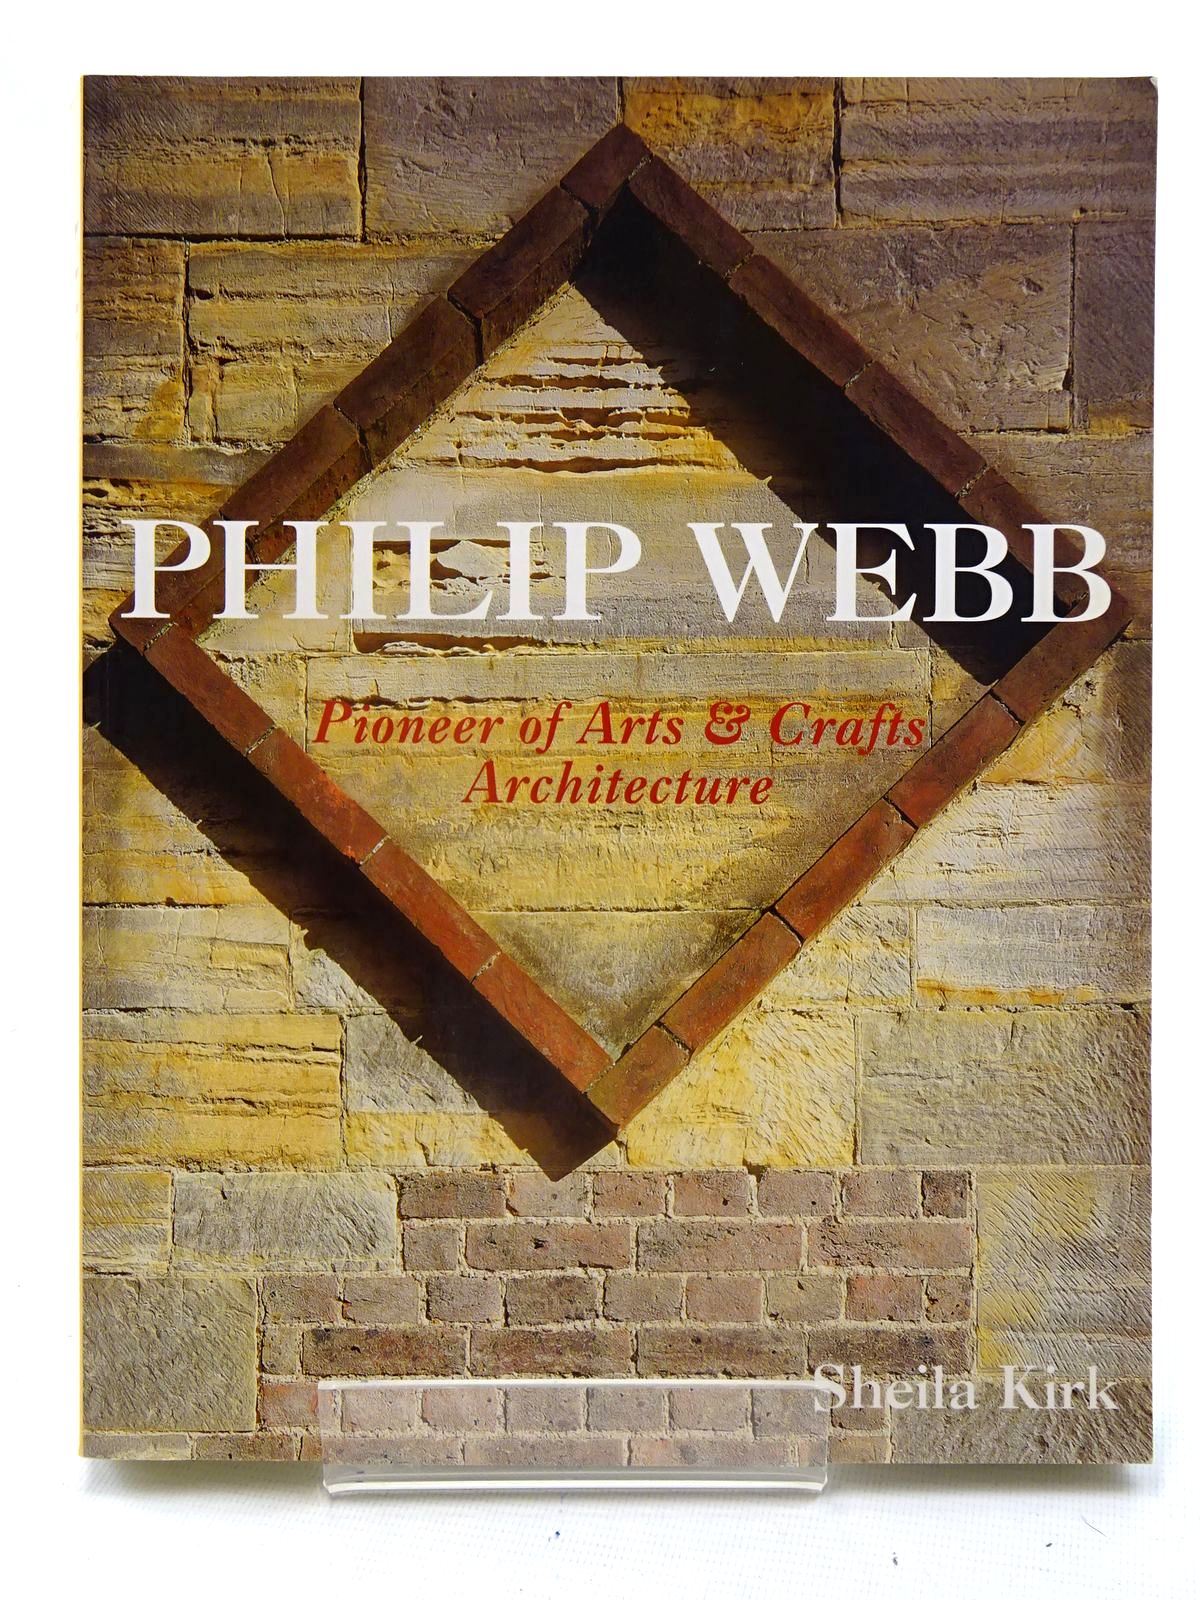 Photo of PHILIP WEBB PIONEER OF ARTS & CRAFTS ARCHITECTURE written by Kirk, Sheila published by Wiley-Academy (STOCK CODE: 1816218)  for sale by Stella & Rose's Books